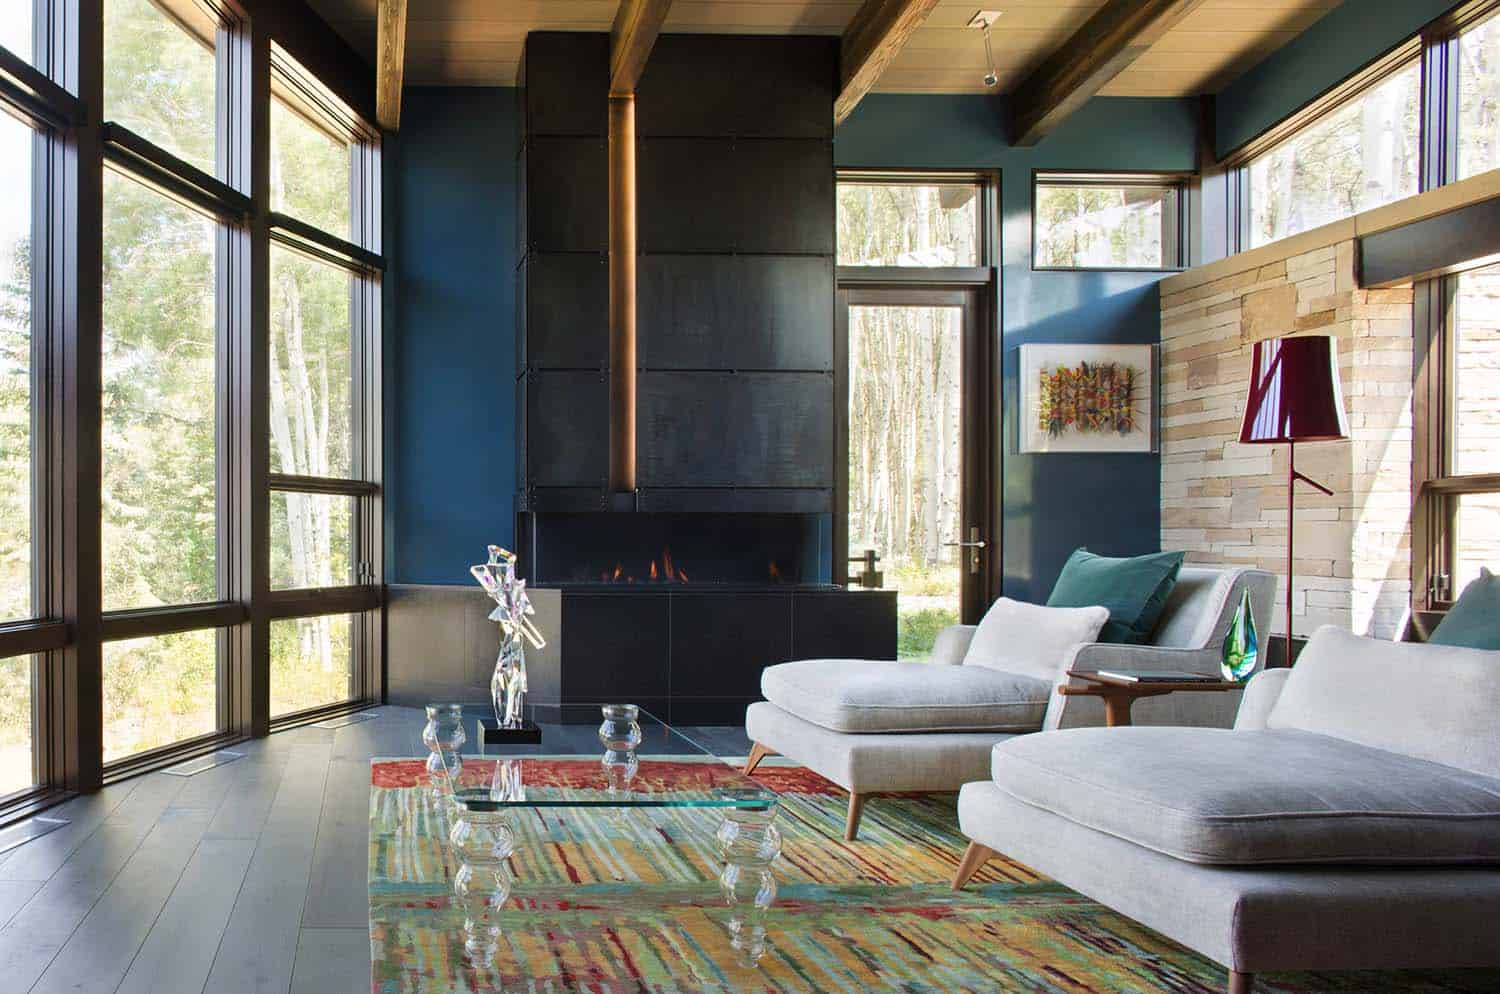 Mountain Contemporary Home-RKD Architects-05-1 Kindesign